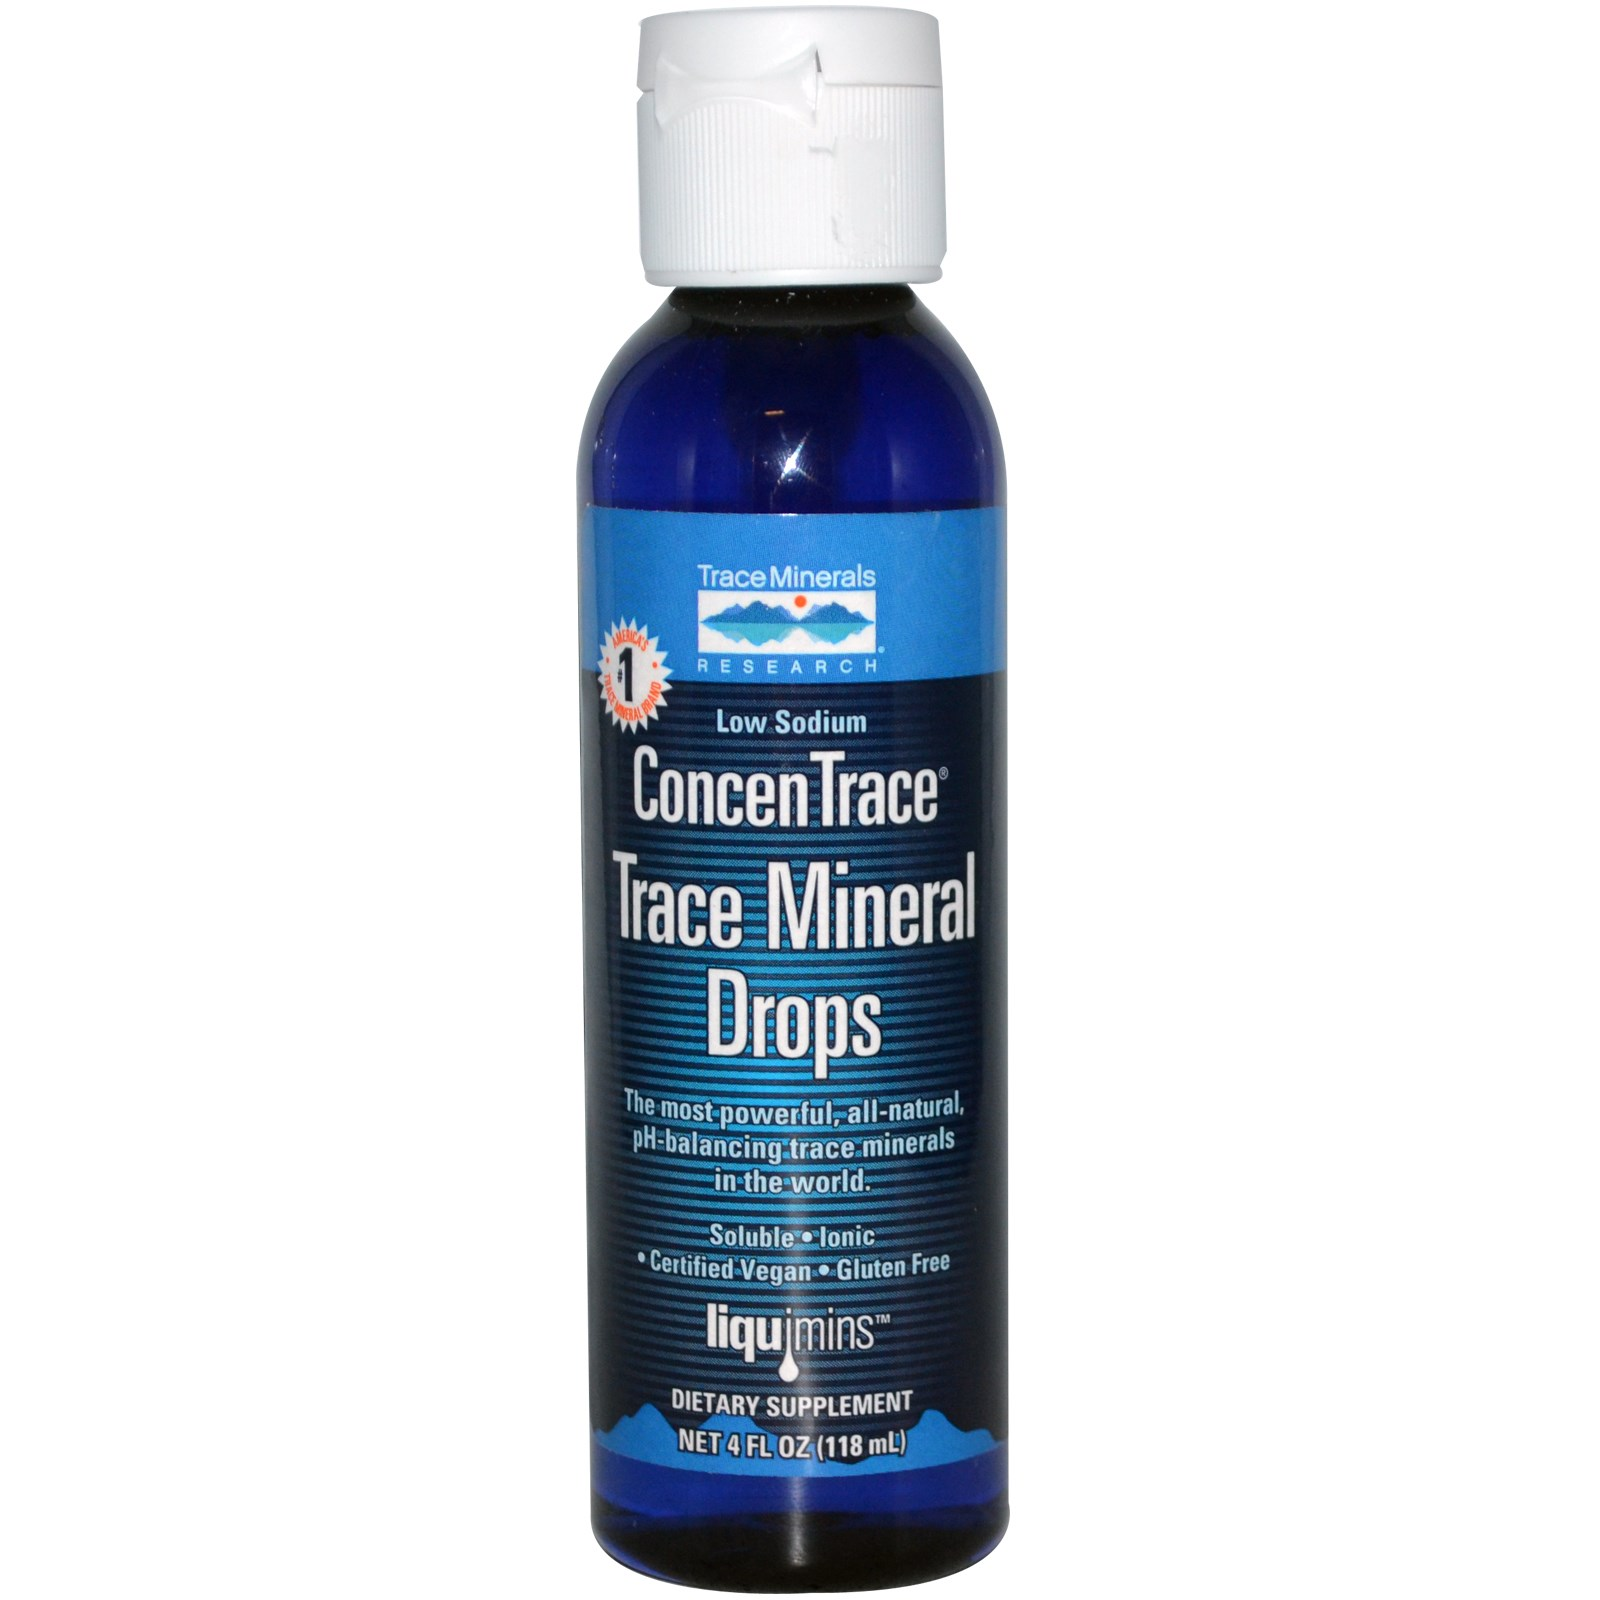 Image of Liquimins, ConcenTrace, Trace Mineral Drops (118 ml) - Trace Minerals Research 0878941000065